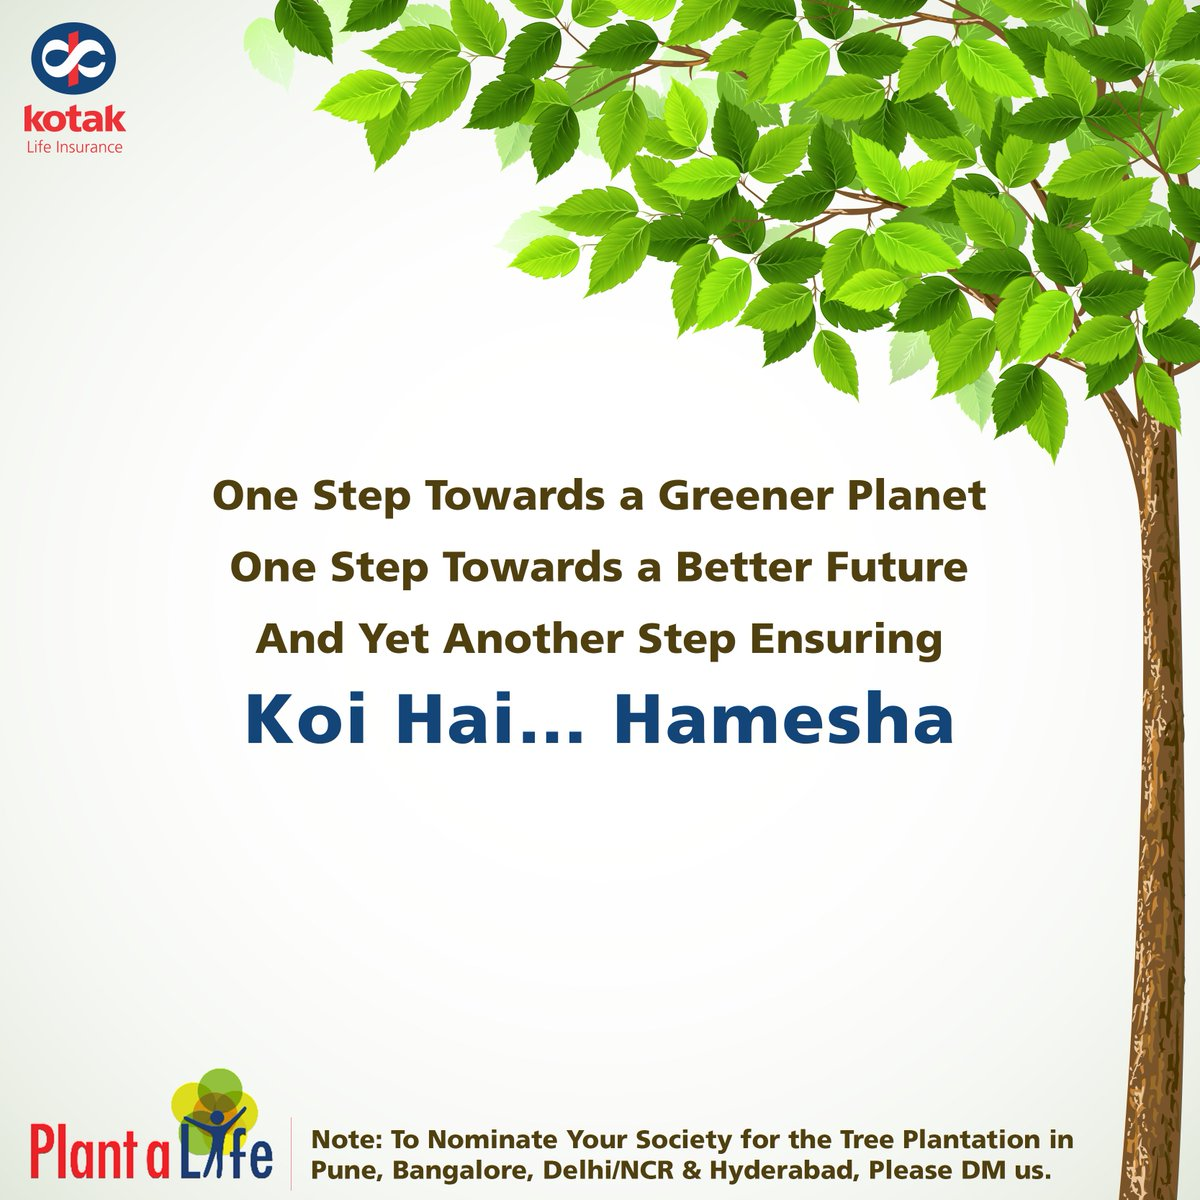 Kotak Life Insurance on Twitter: